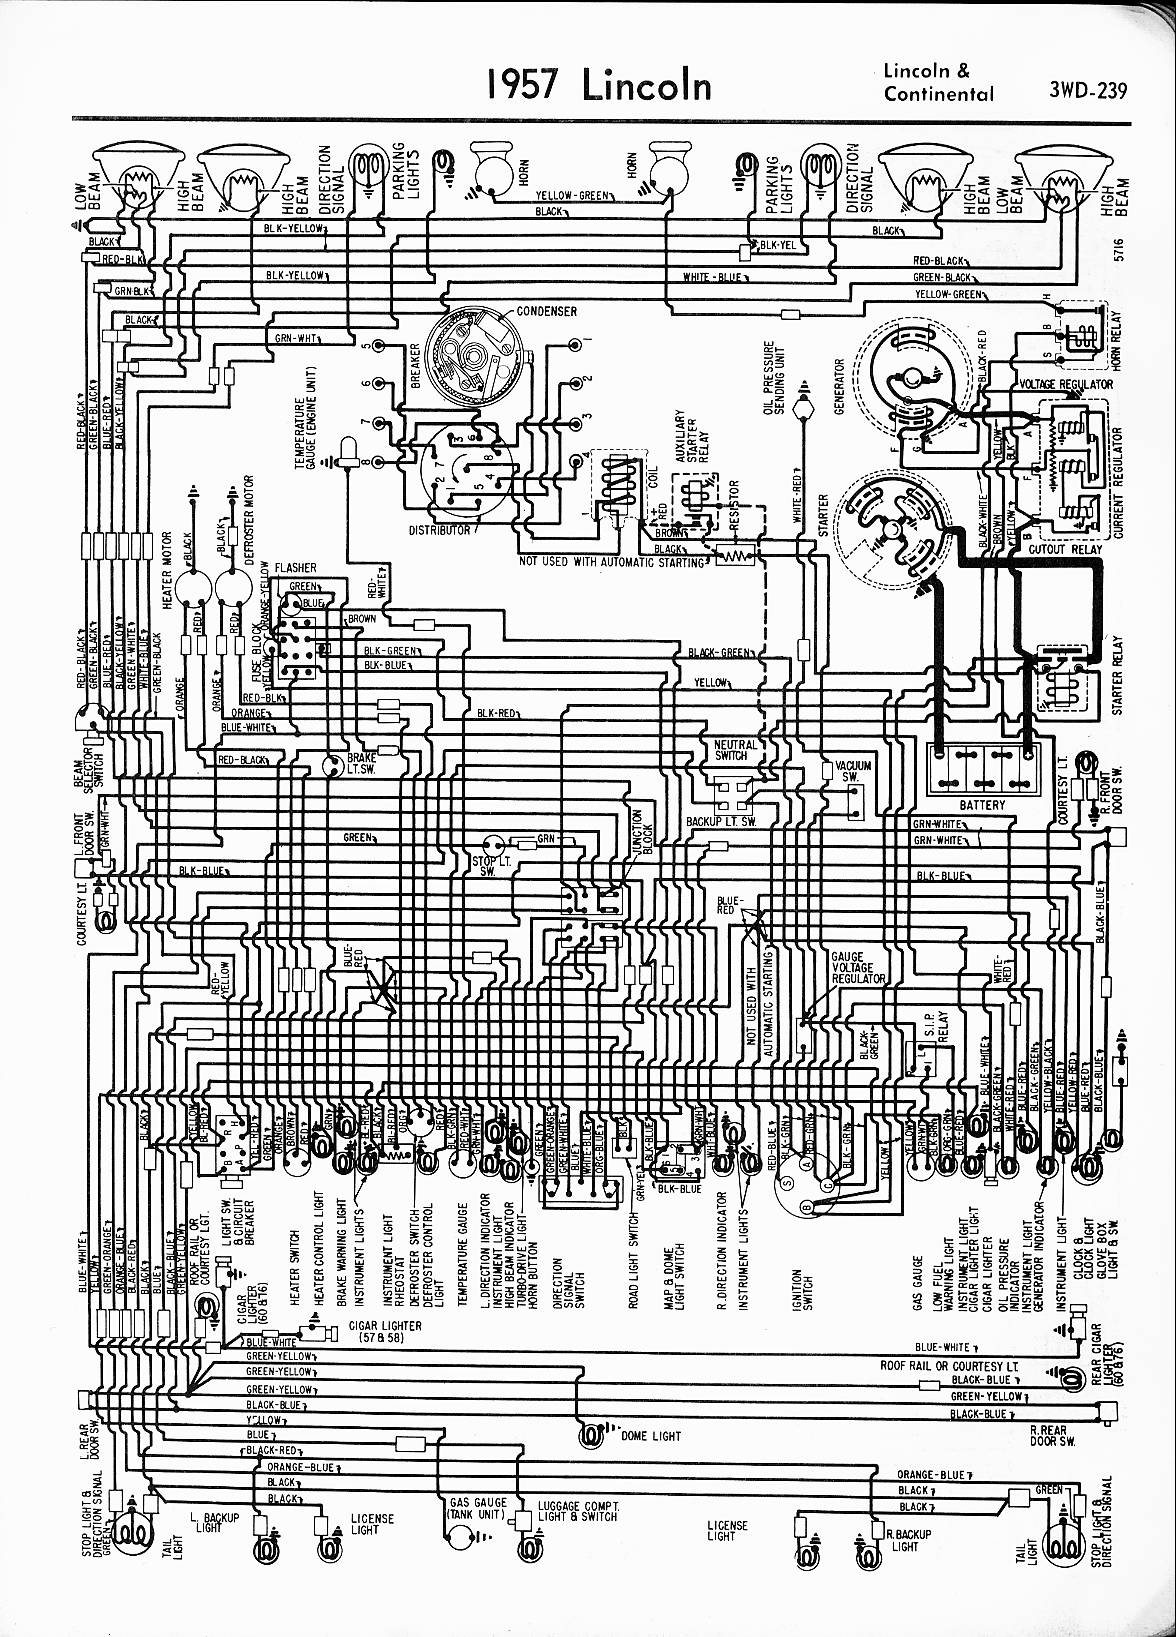 lincoln wiring diagrams 1957 1965 rh oldcarmanualproject com lincoln dc 600  wiring diagram lincoln k870 wiring diagram